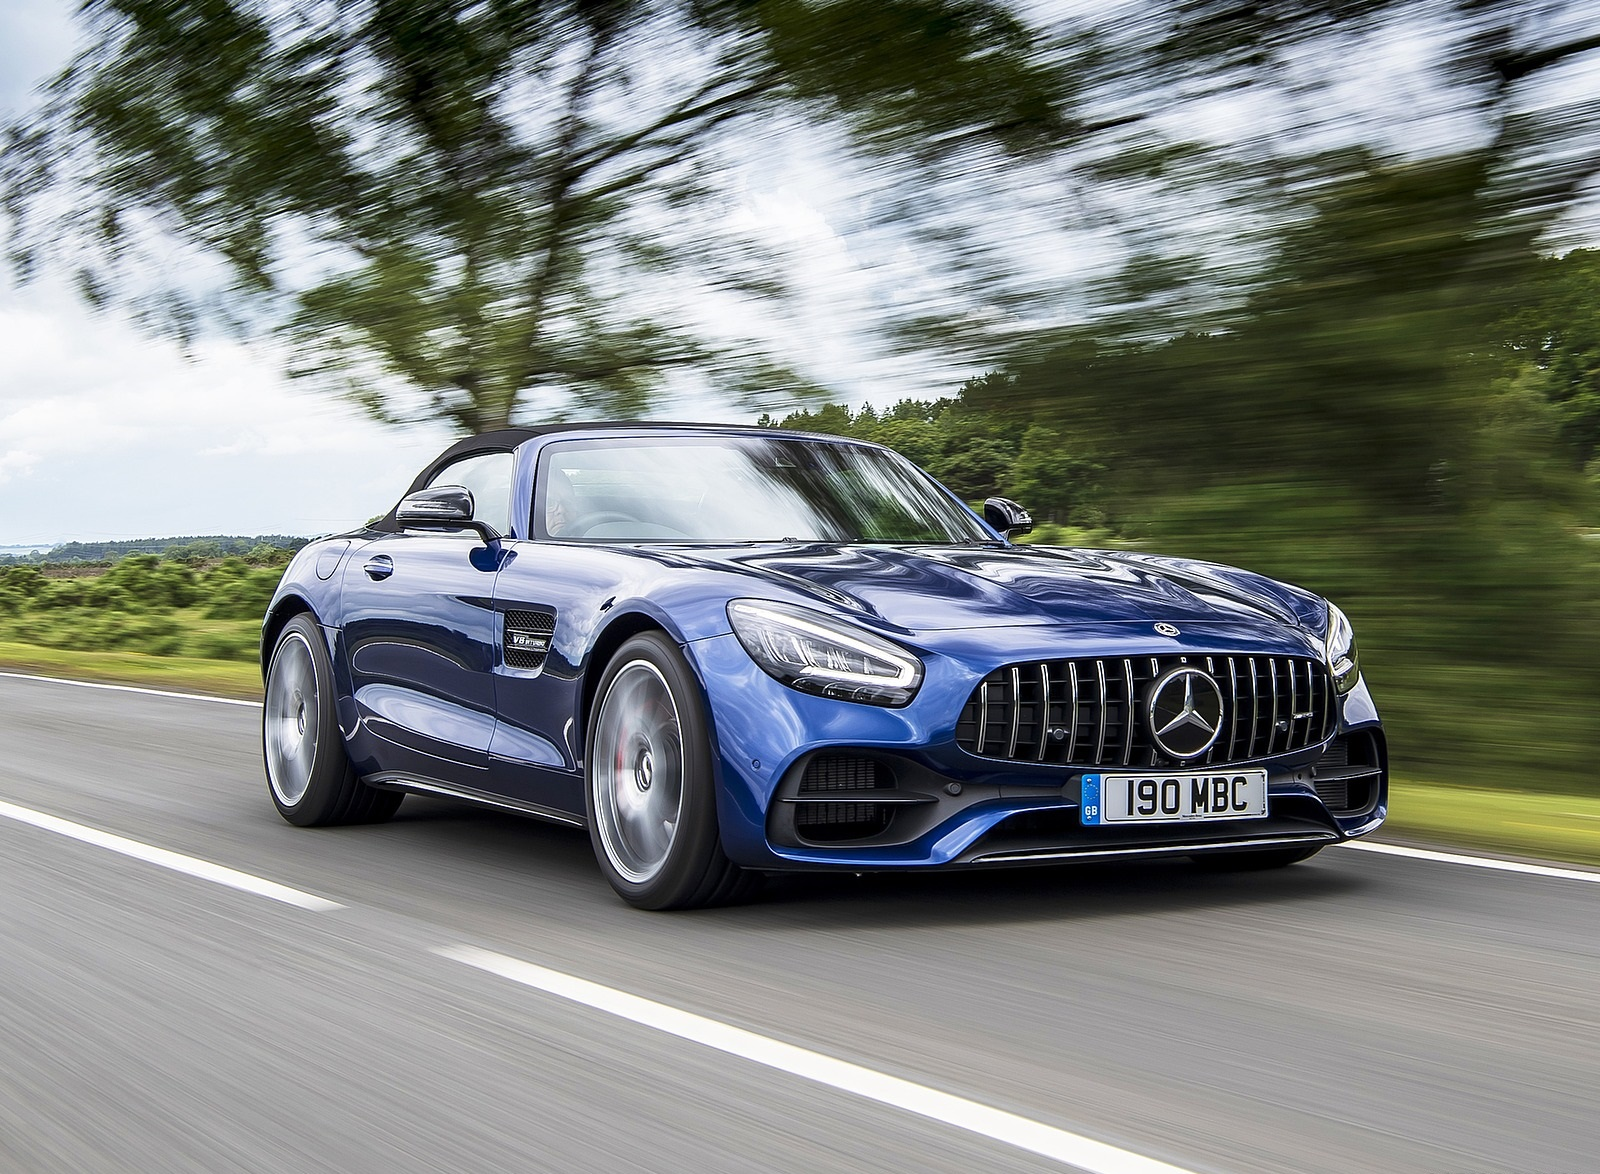 2020 Mercedes-AMG GT S Roadster (UK-Spec) Front Three-Quarter Wallpapers (8)